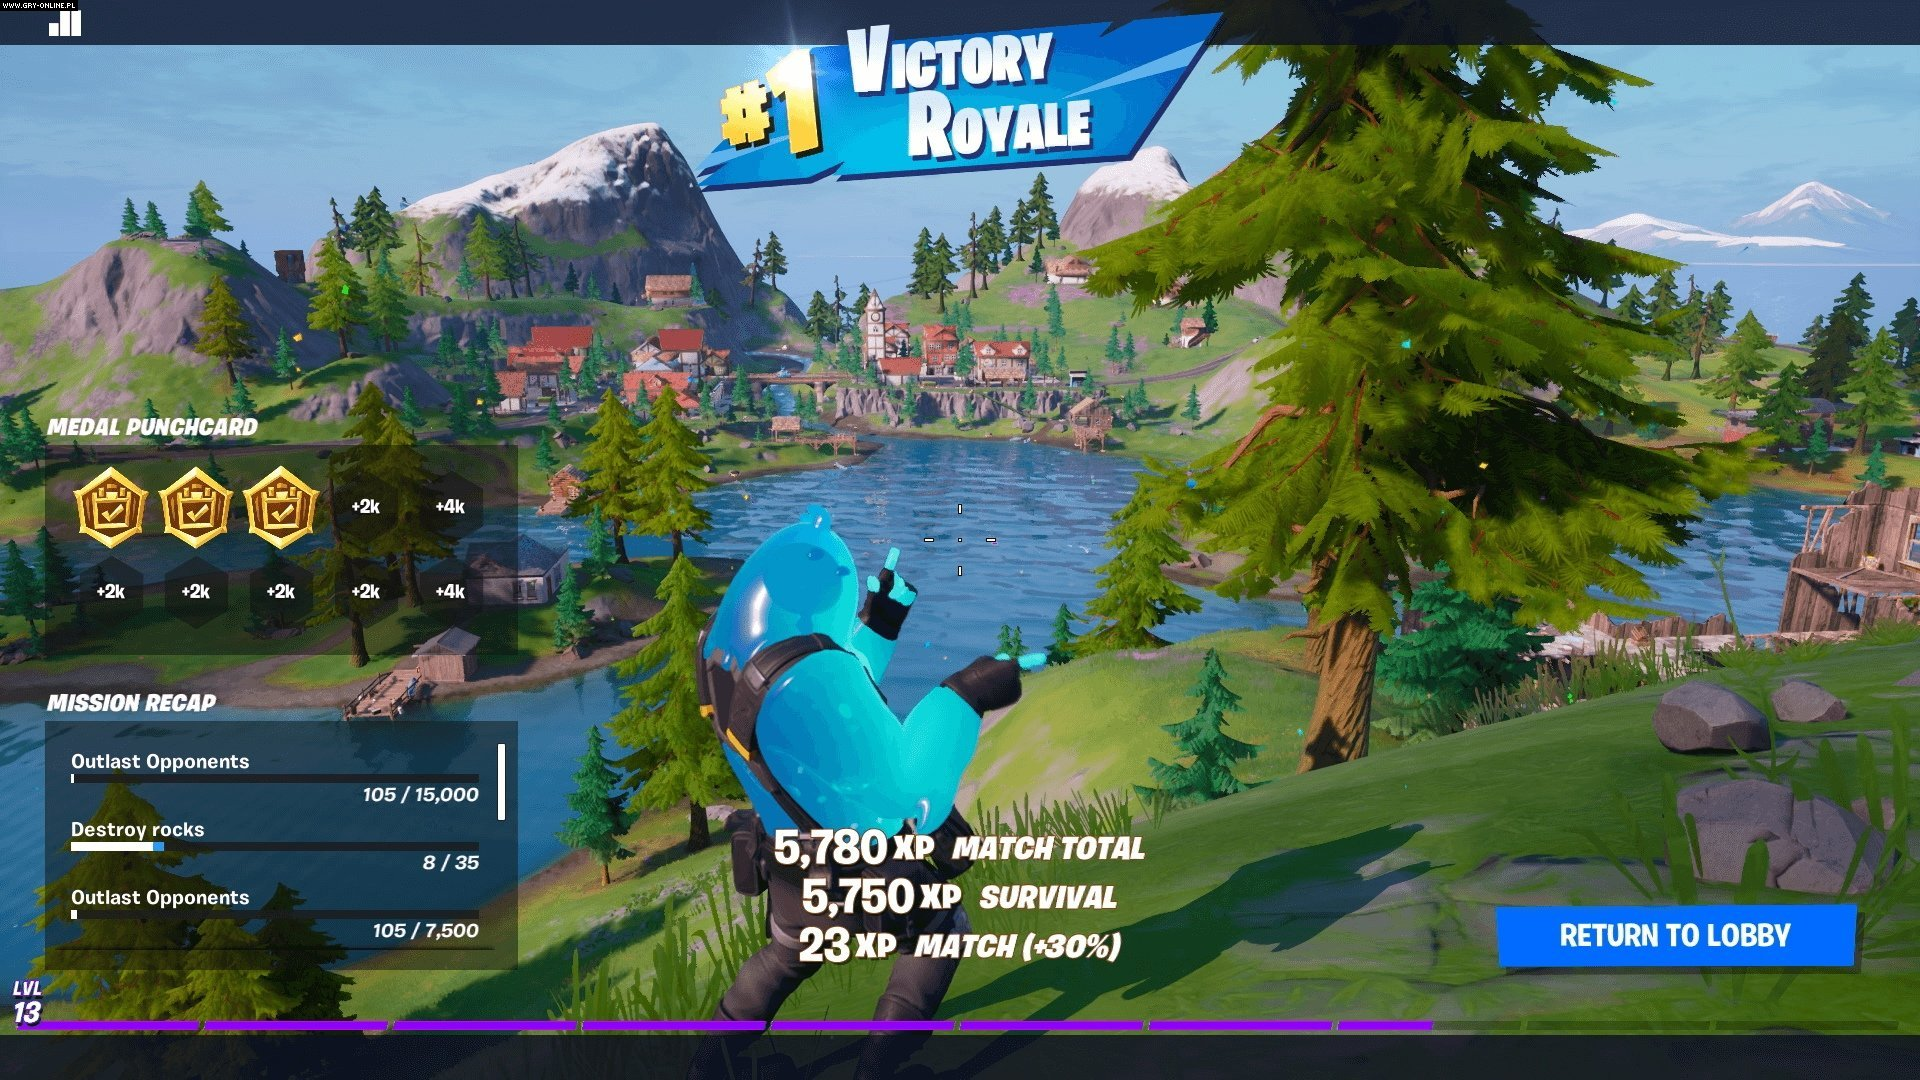 Fortnite: Battle Royale PC, PS4, XONE, AND, iOS, Switch Games Image 1/29, Epic Games